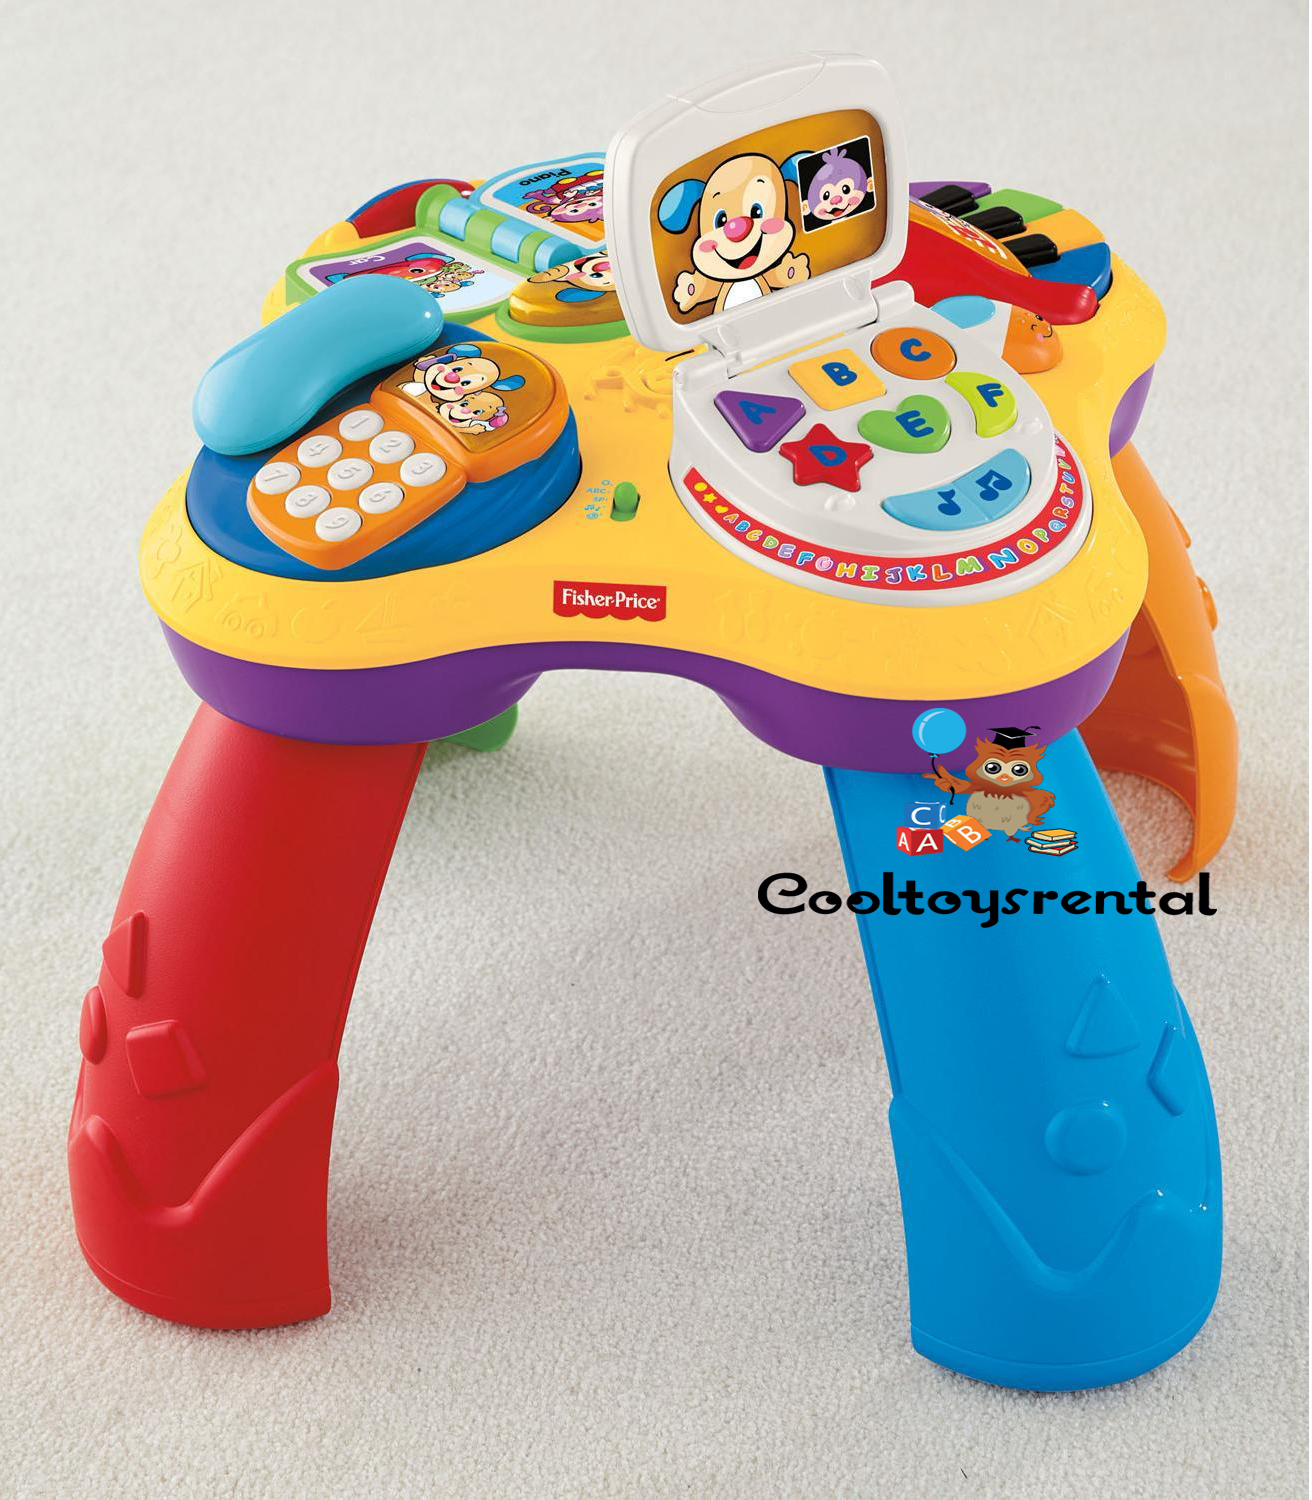 Fisher Price Laugh & Learn Puppy and Friends Learning Table « cooltoysrental.com